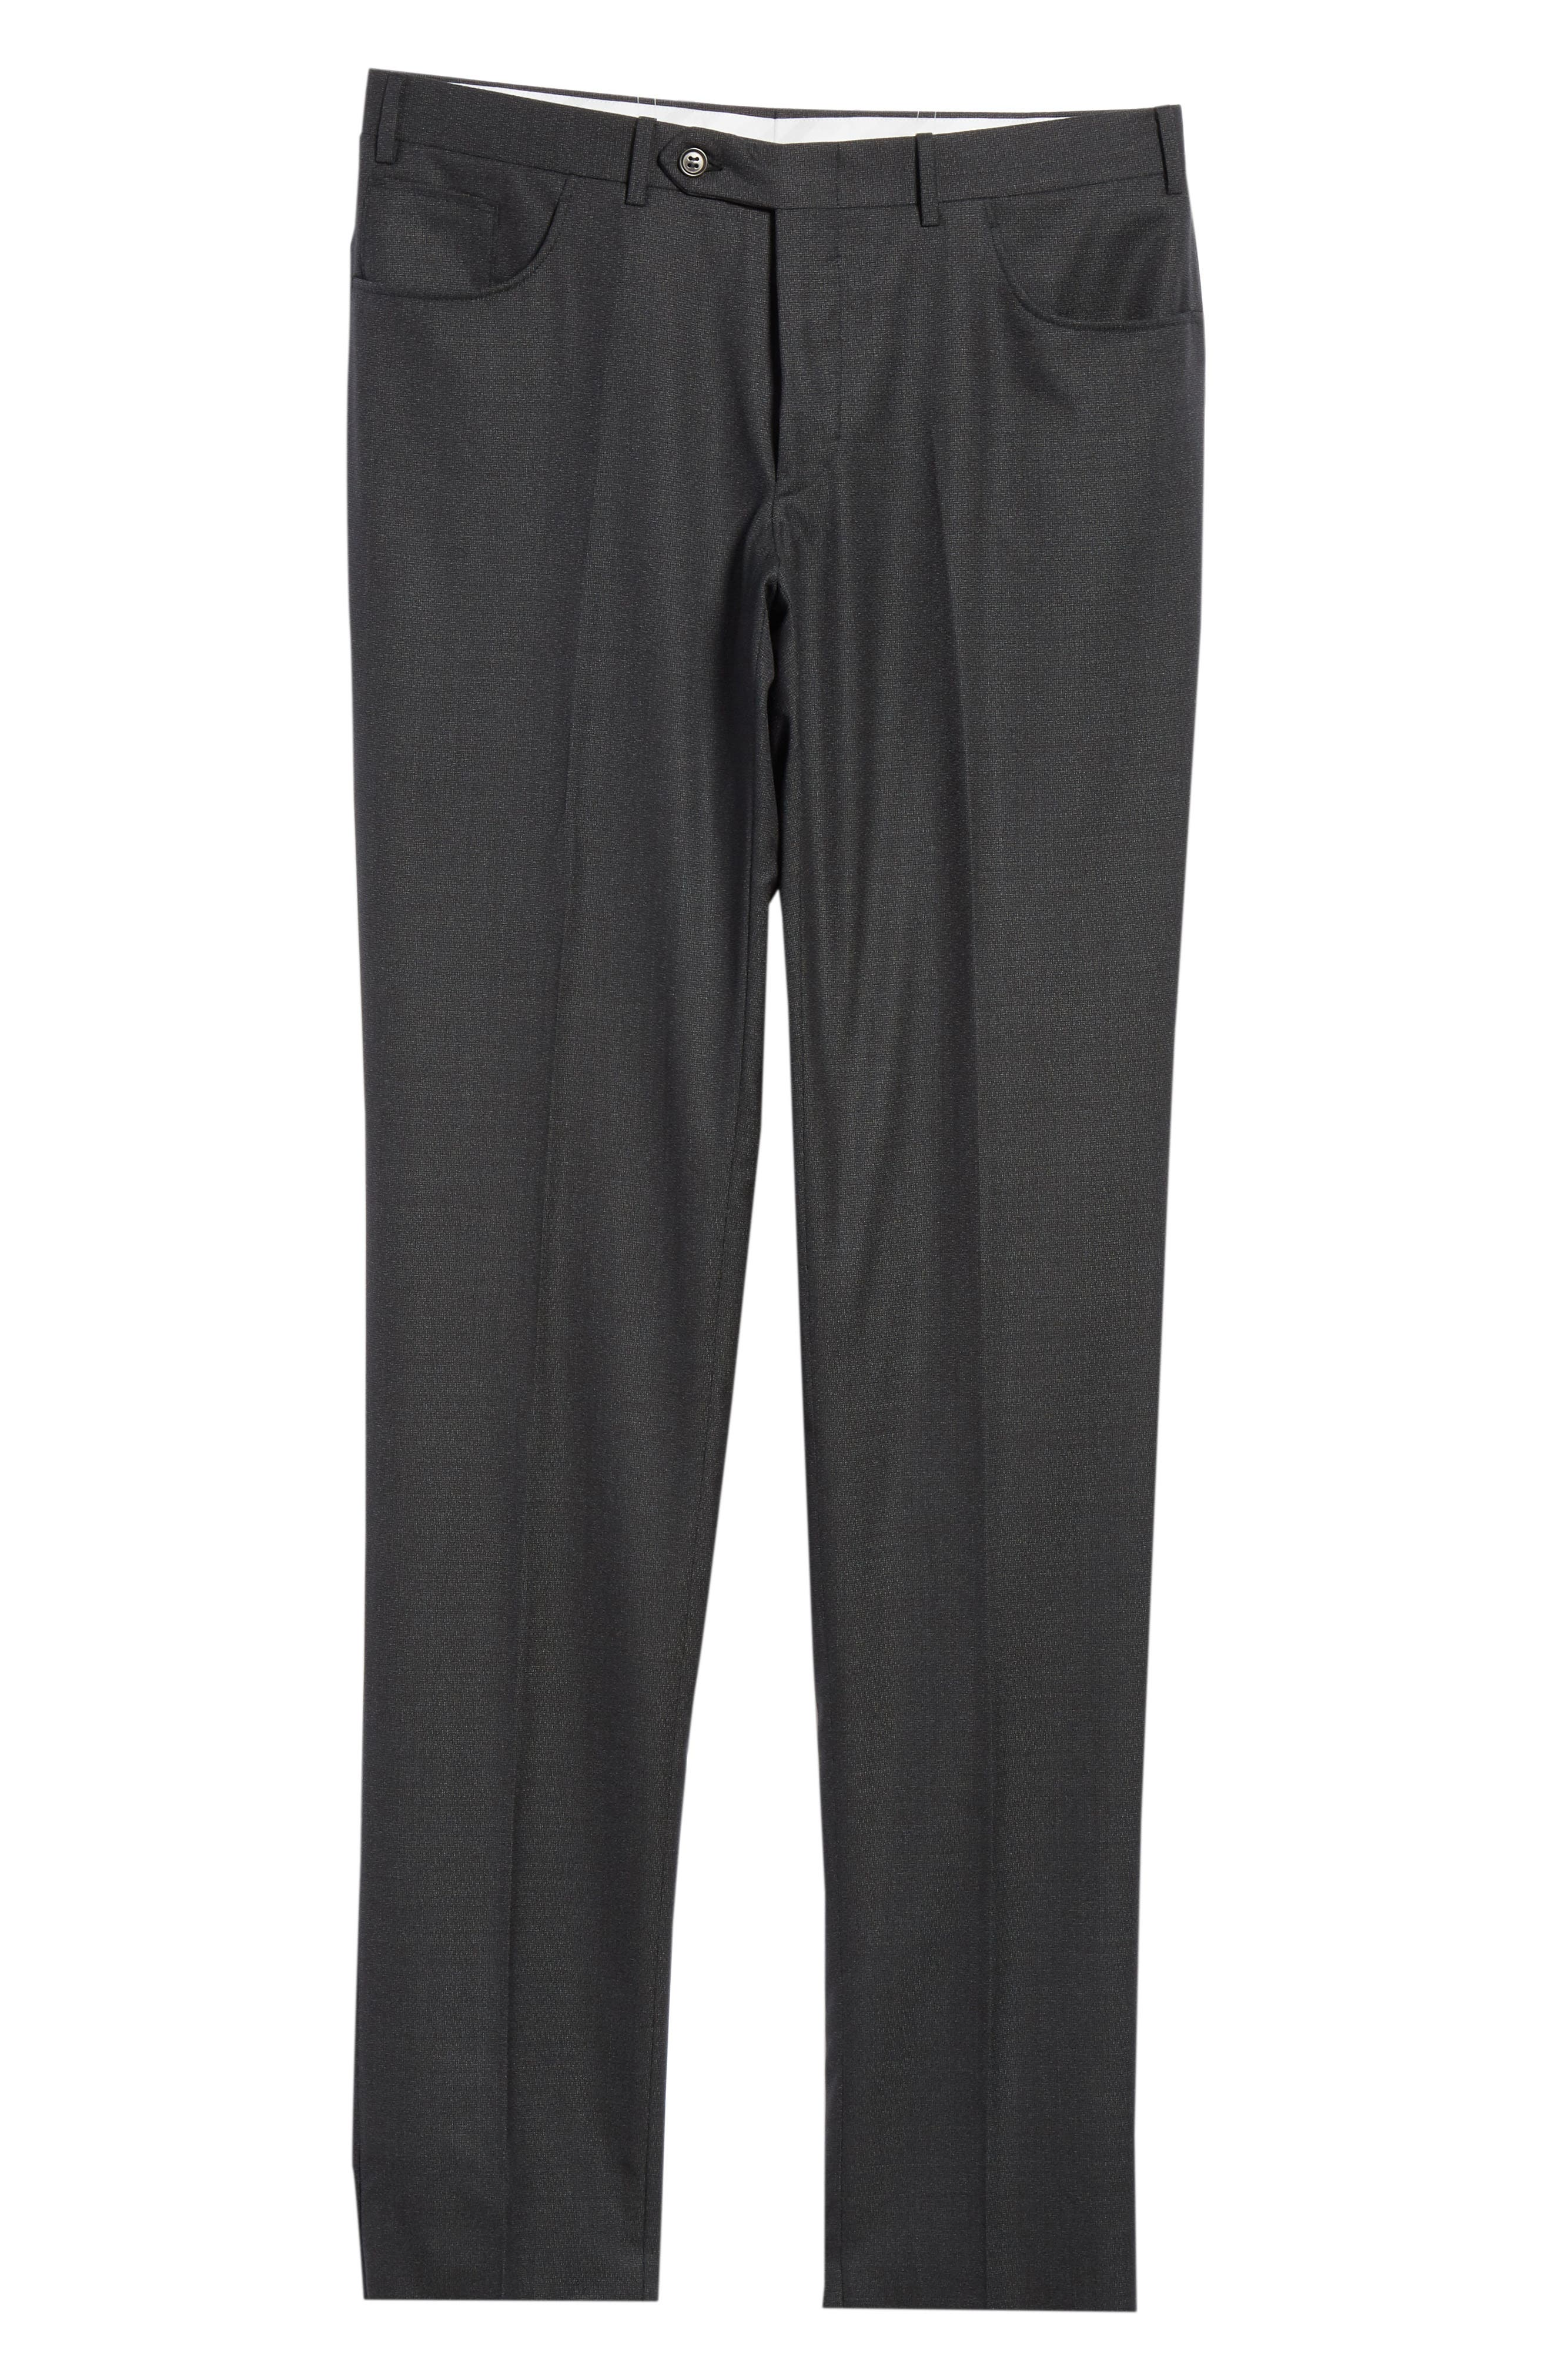 Flat Front Solid Wool Trousers,                             Alternate thumbnail 6, color,                             DARK GREEN